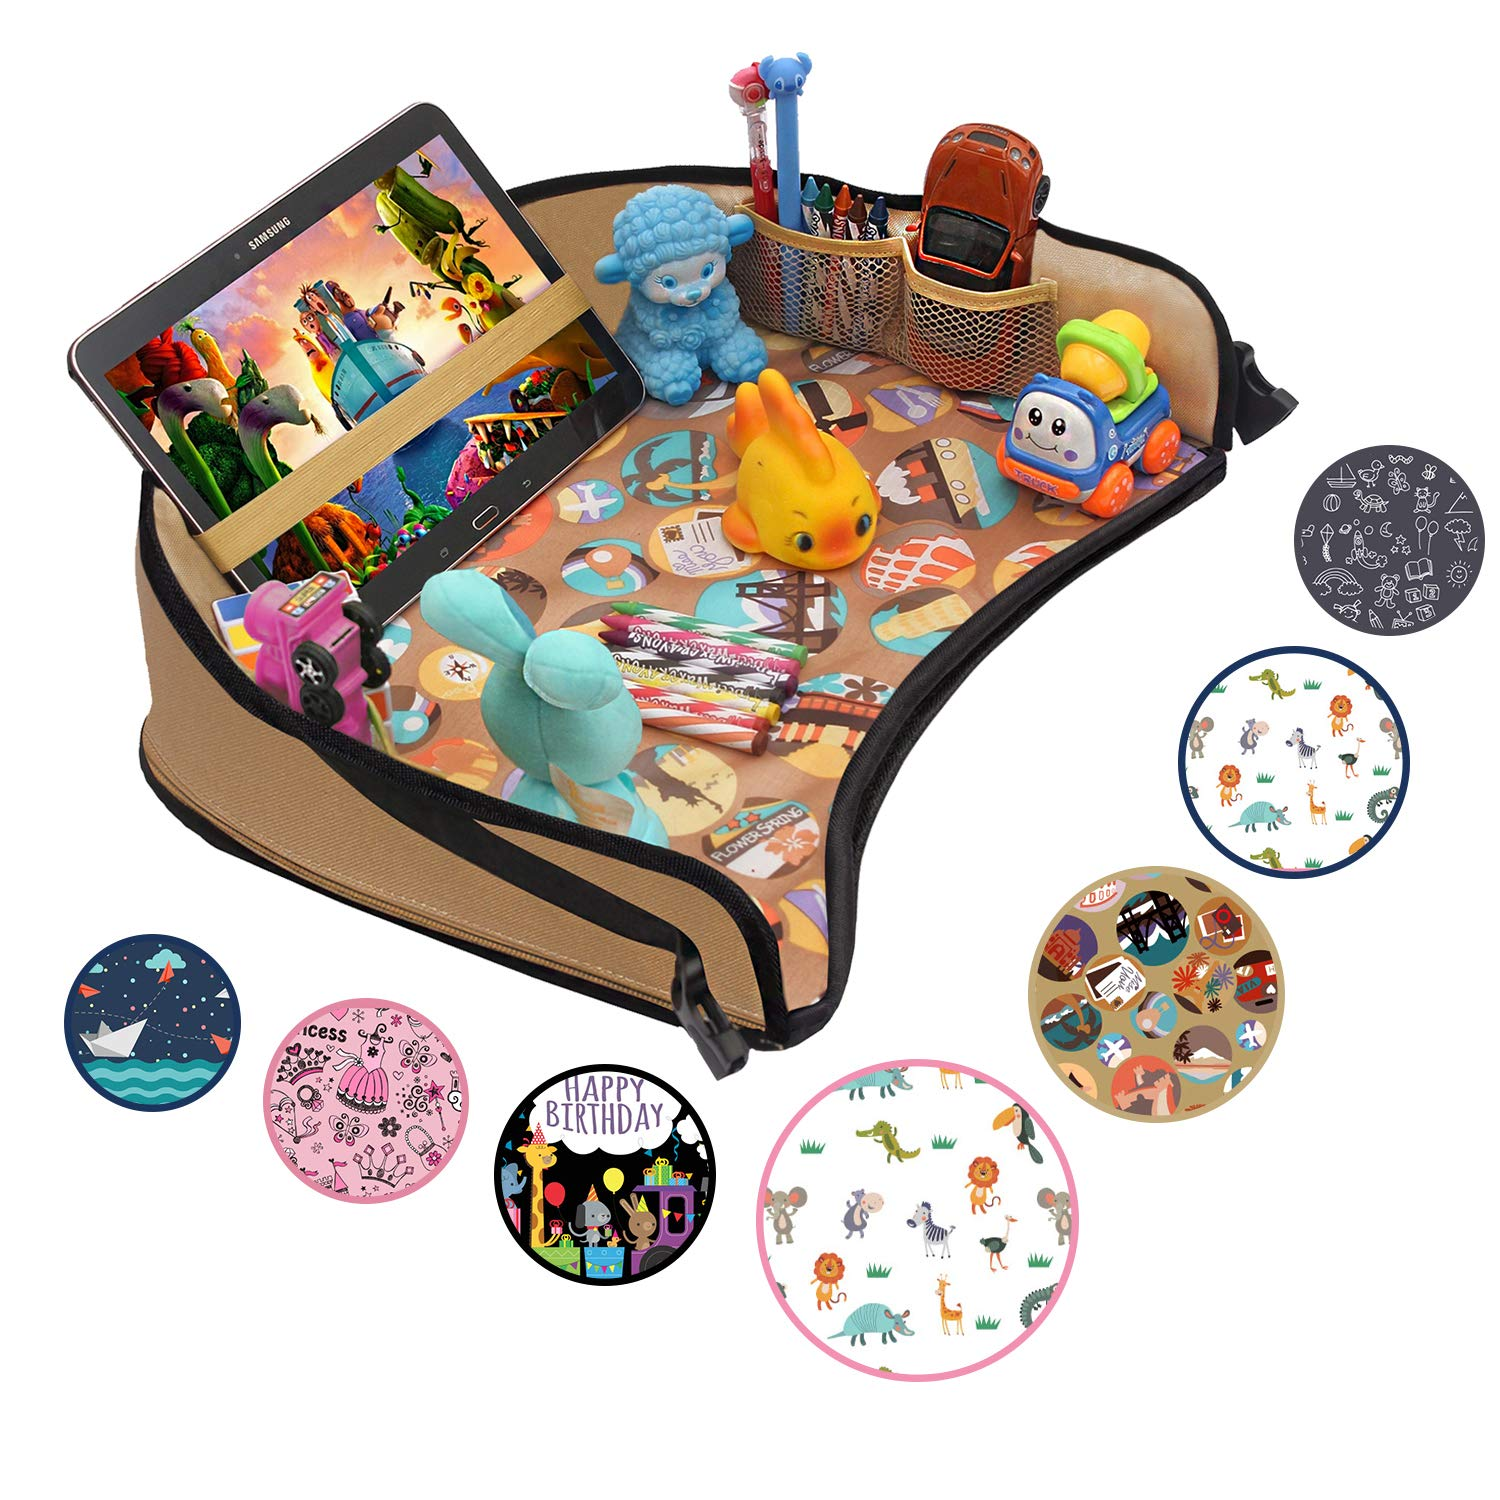 DMoose Kids Travel Activity Tray - Non-Flimsy, Tablet Holder, Strong Buckles, Sturdy Side Walls & Padded Base - Waterproof Snack, Play, Learn & Organize Lap Desk for Car Seats, Strollers & Air Travel by DMoose